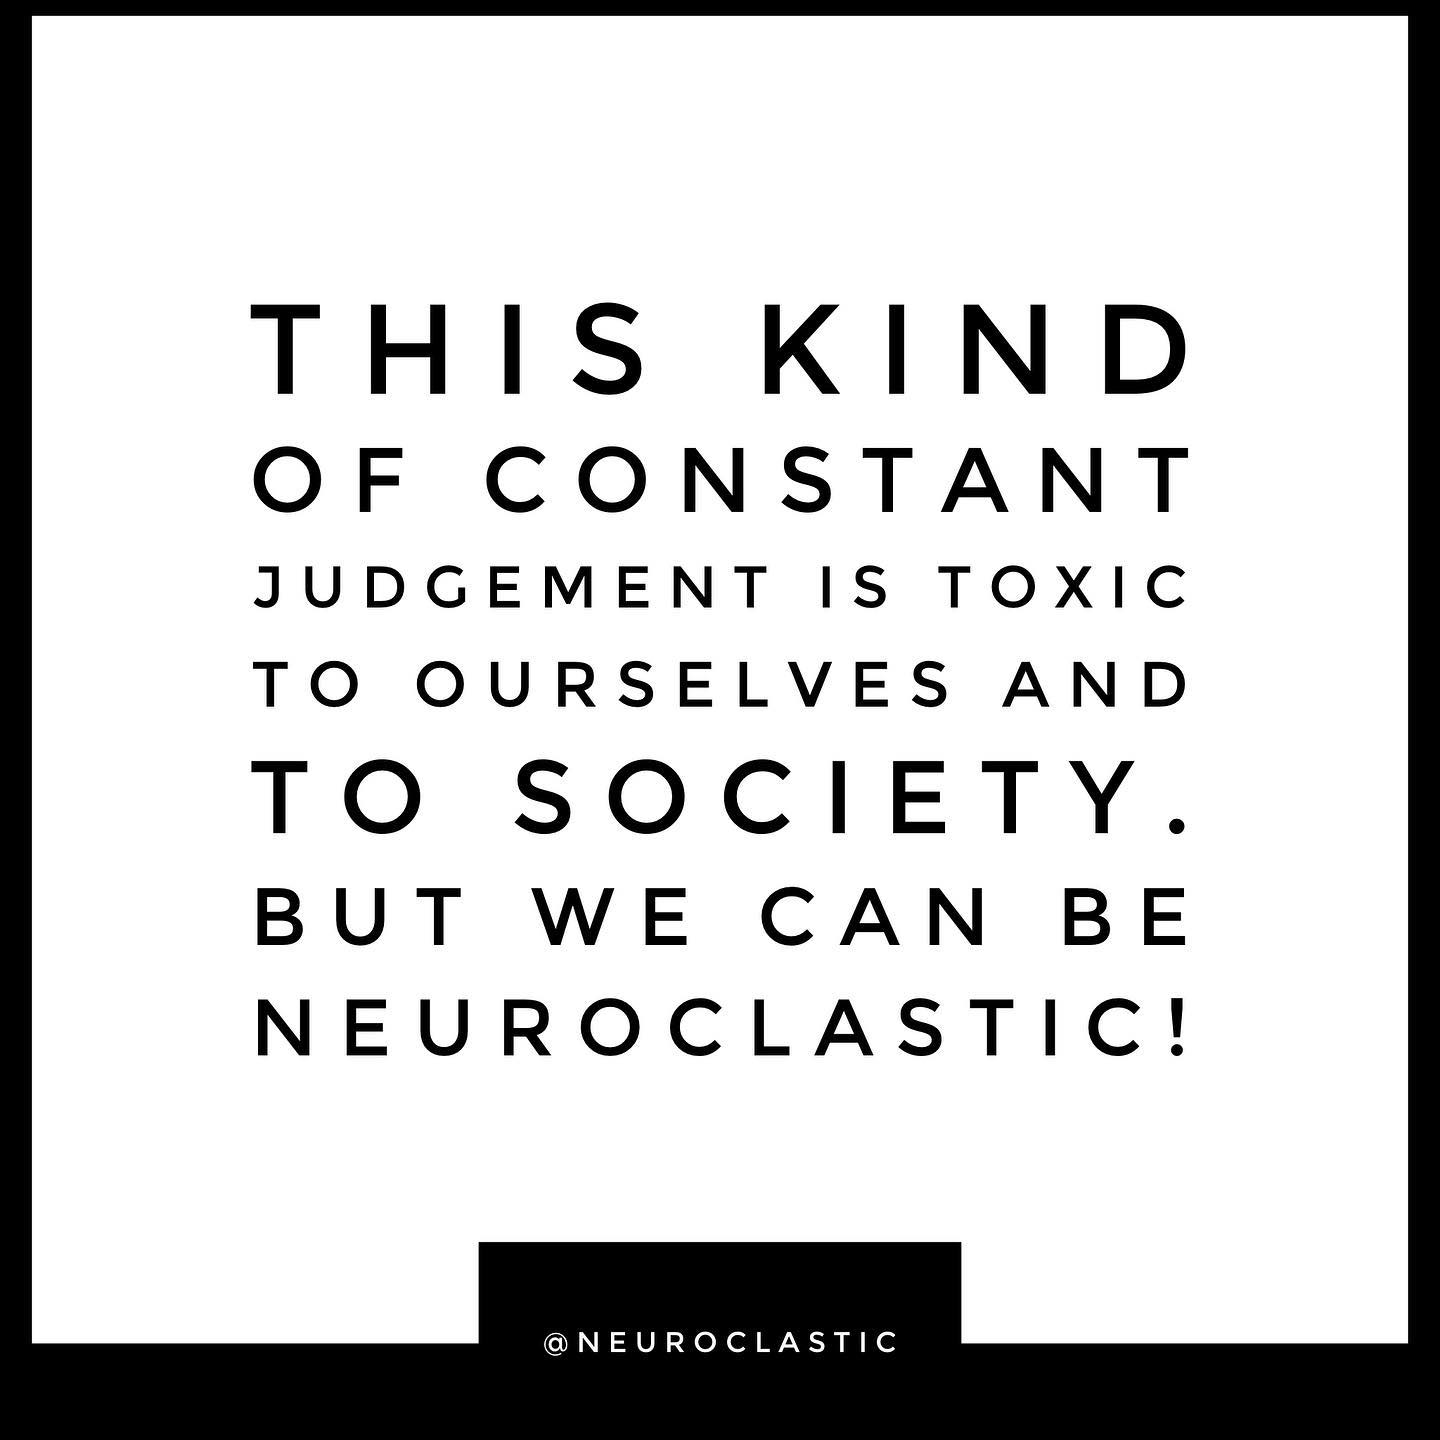 This kind of constant judgement is toxic to ourselves and to society. But we can be NeuroClastic! @NeuroClastic